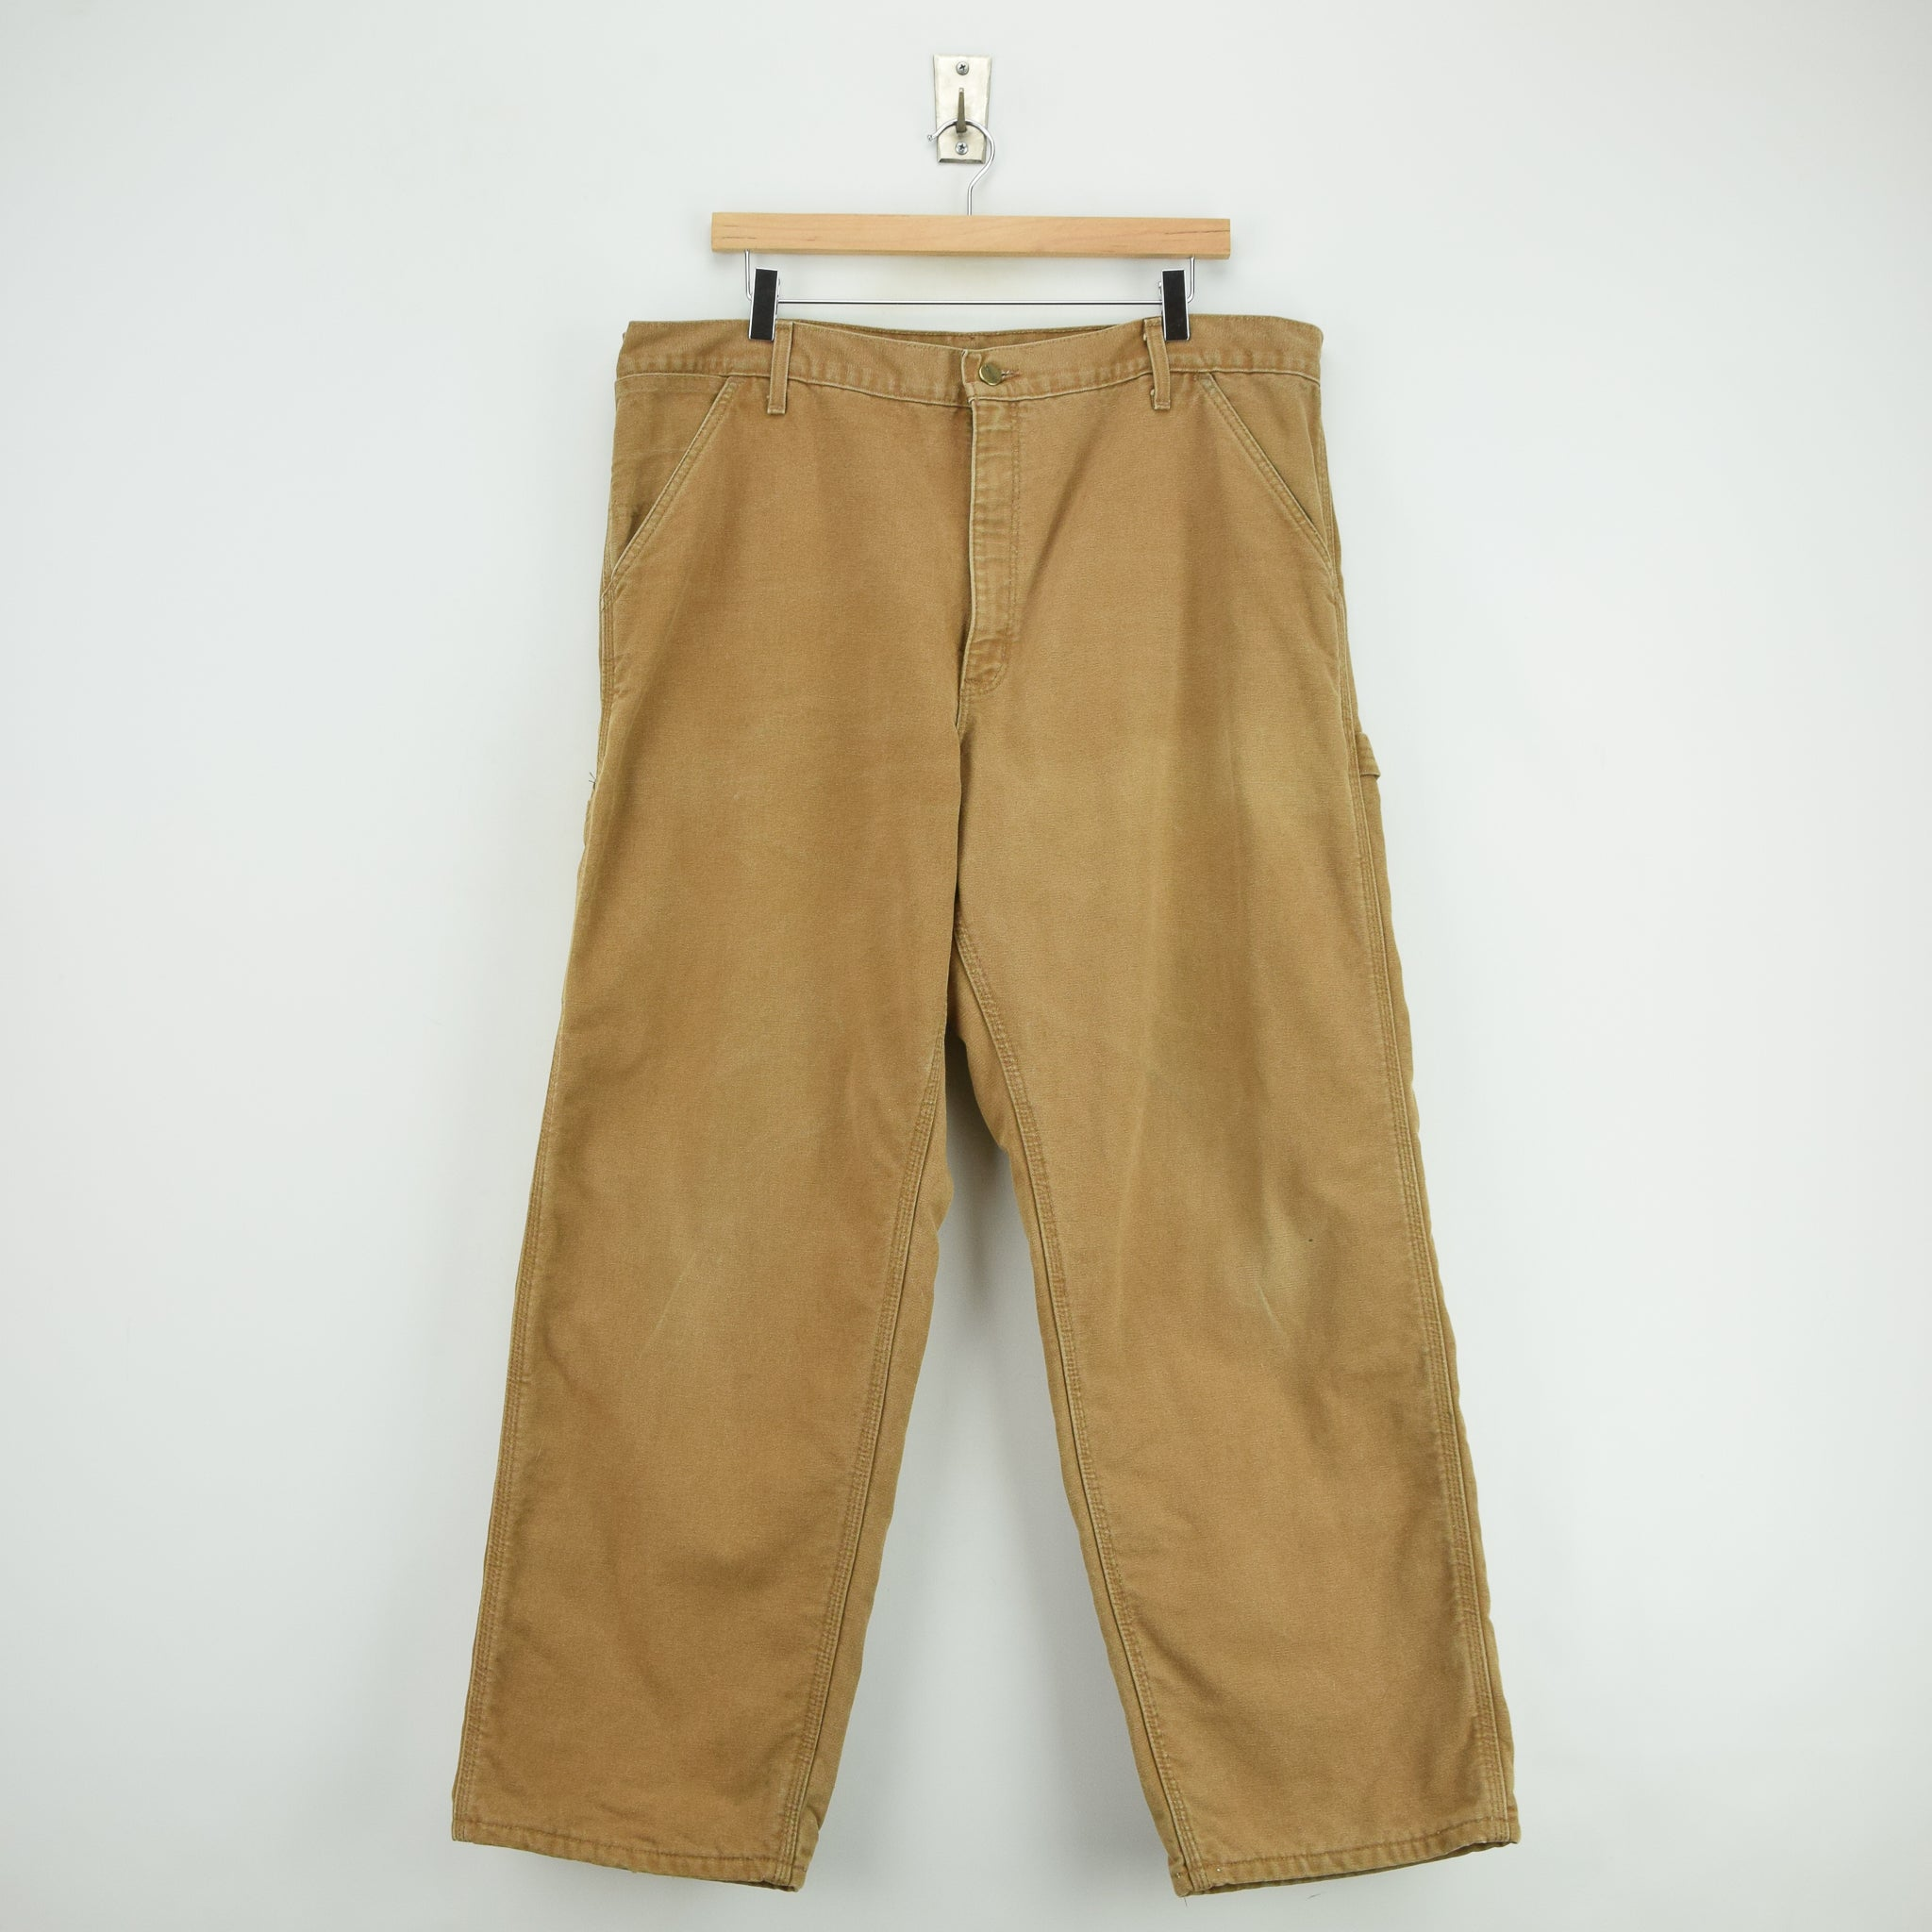 36b3d6c0 Vintage Carhartt Duck Canvas Utility Work Pant Blanket Lined USA Made 38 W  30 L